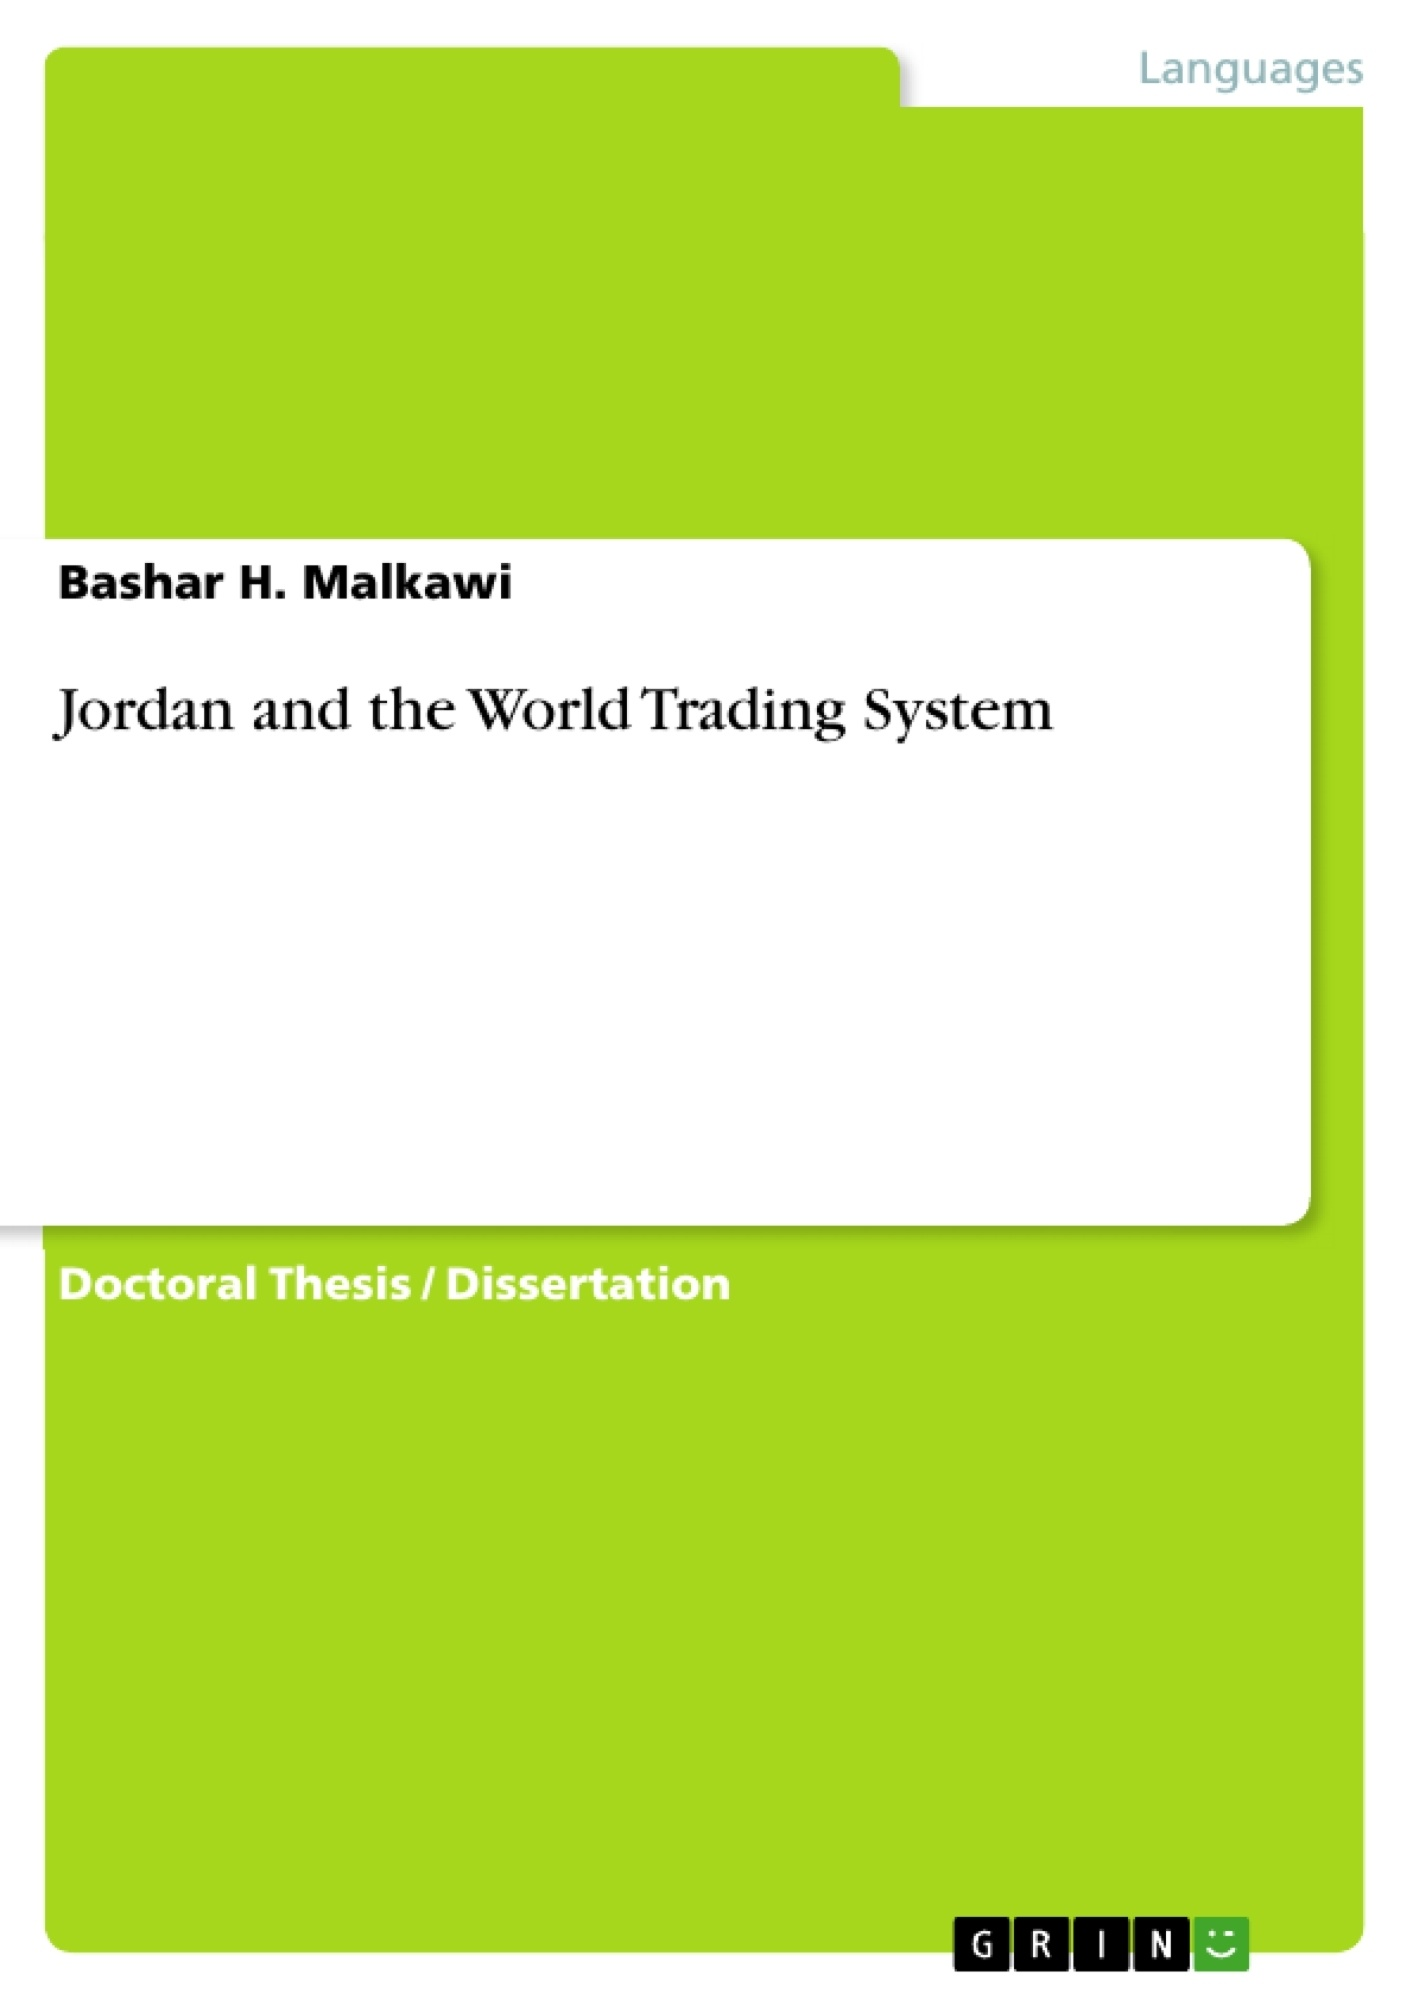 Title: Jordan and the World Trading System